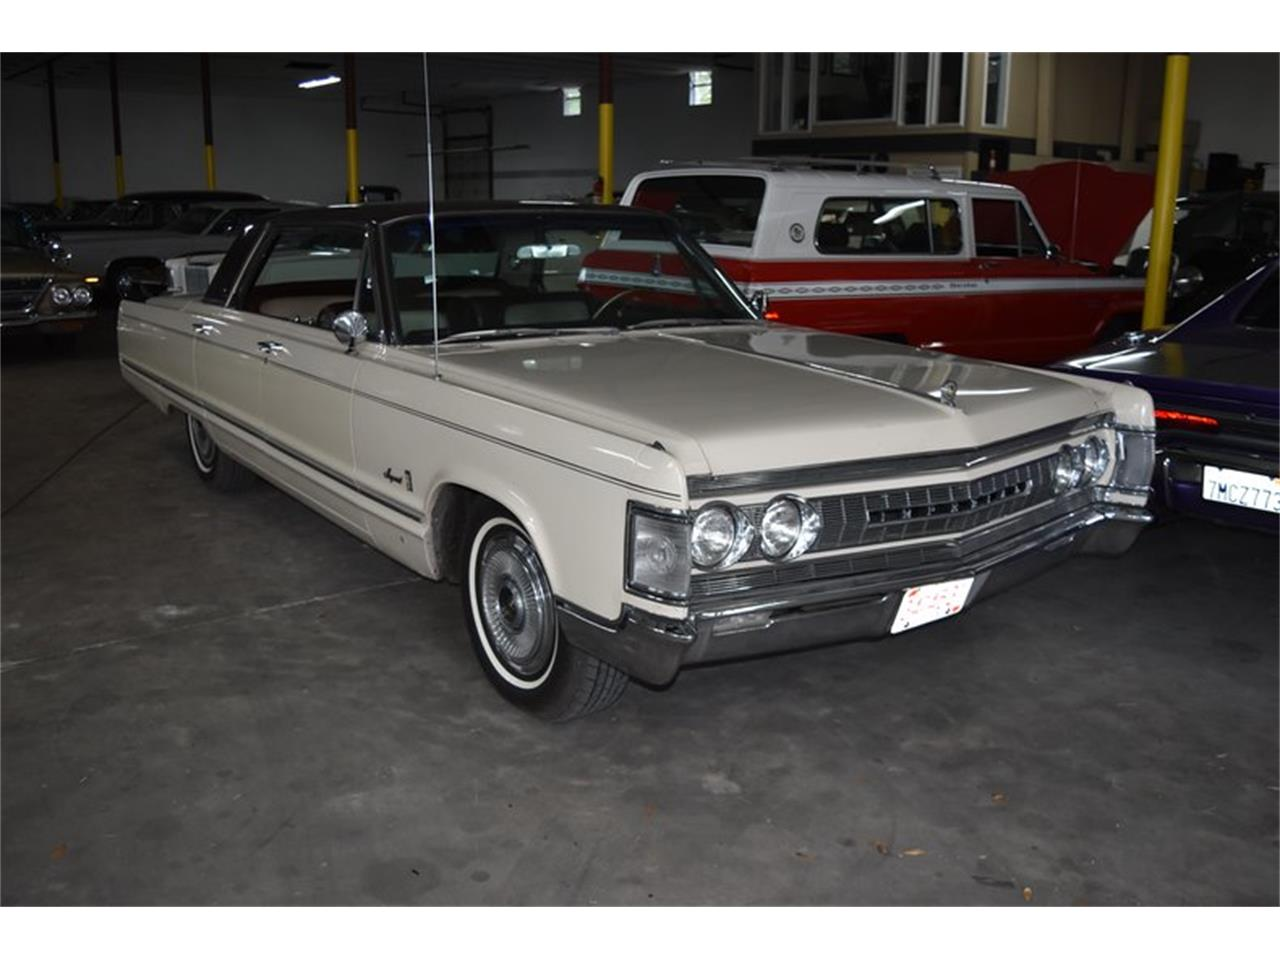 Large Picture of '67 Chrysler Imperial located in Florida - $11,900.00 Offered by Orlando Classic Cars - QIWP